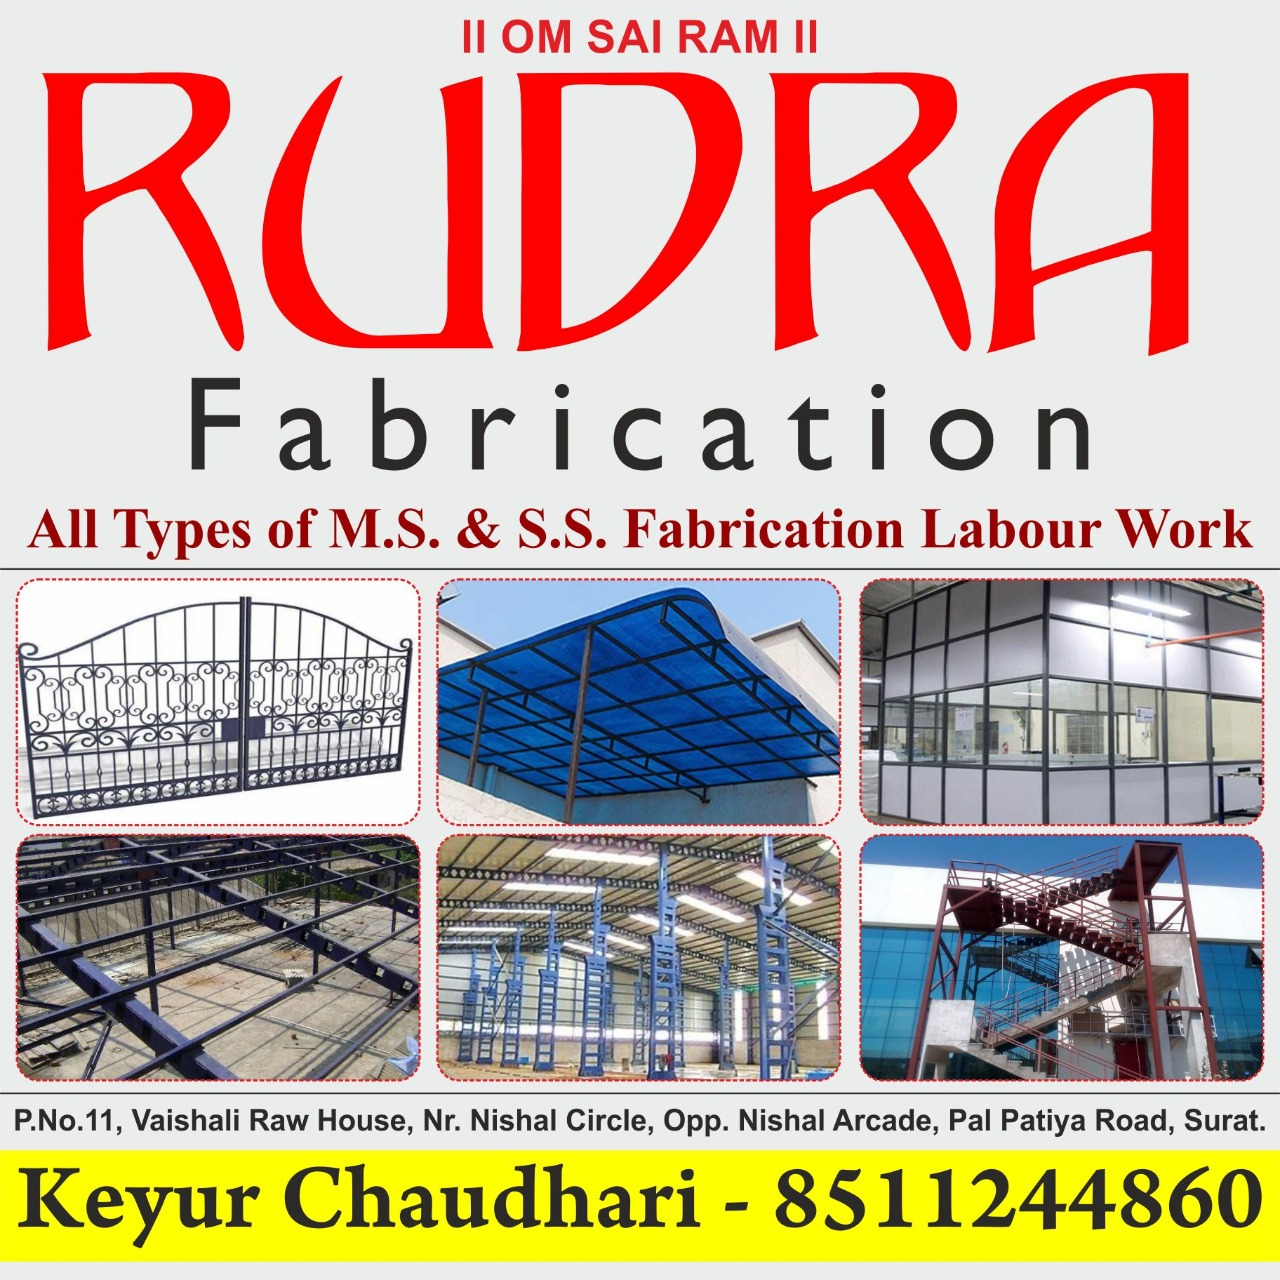 Fabrication Work in Surat | Tachukdi Ad (www.tachukdiad.com)